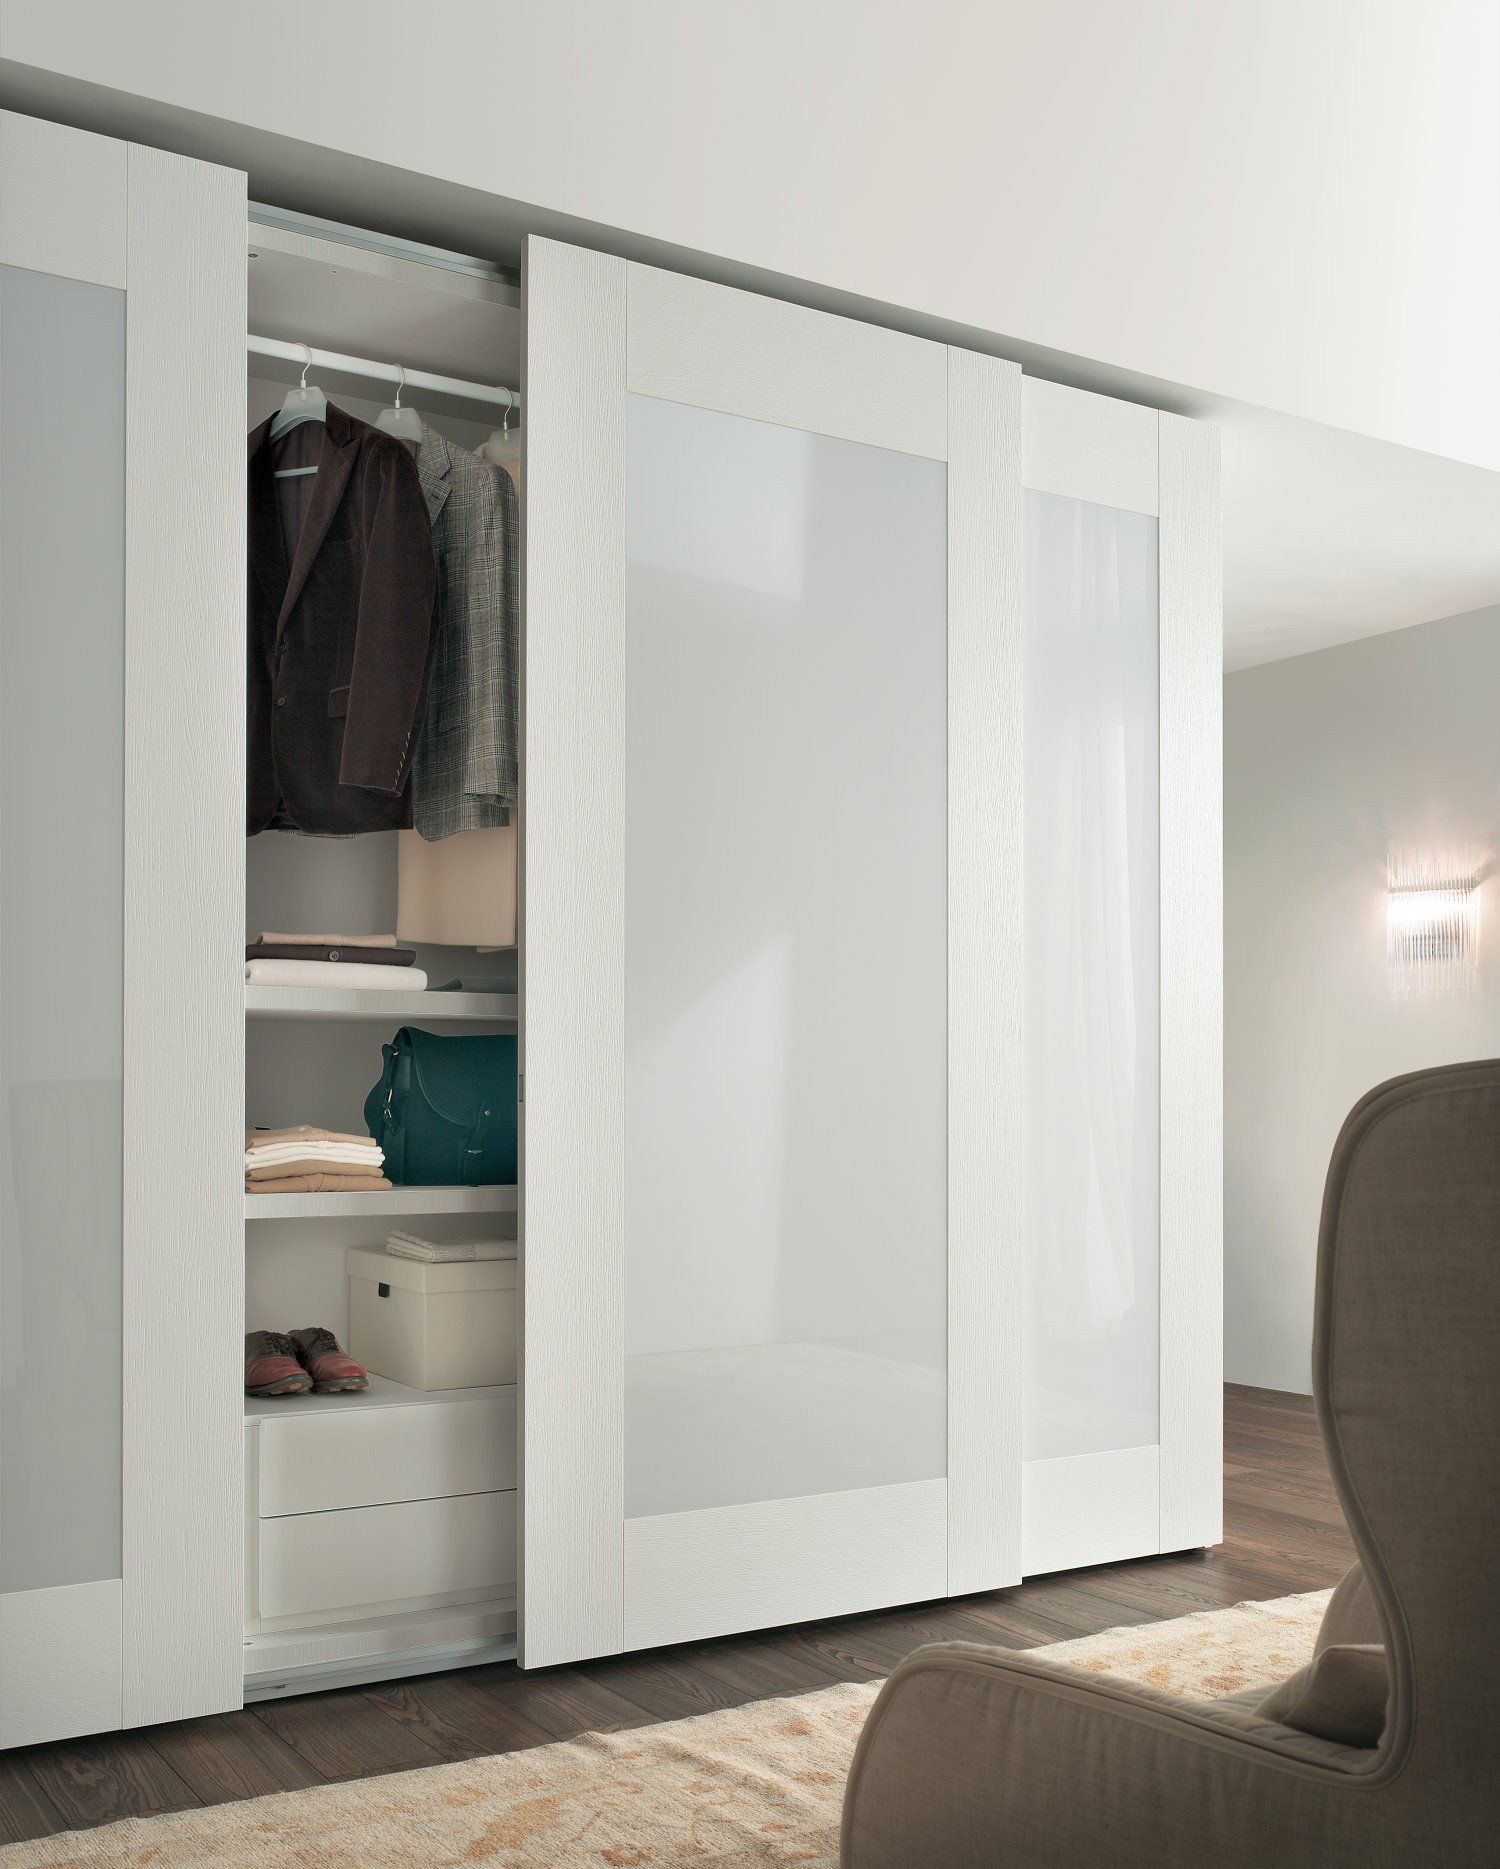 Mirrored Closet Doors | bathroom | Pinterest | Mirrored closet ...